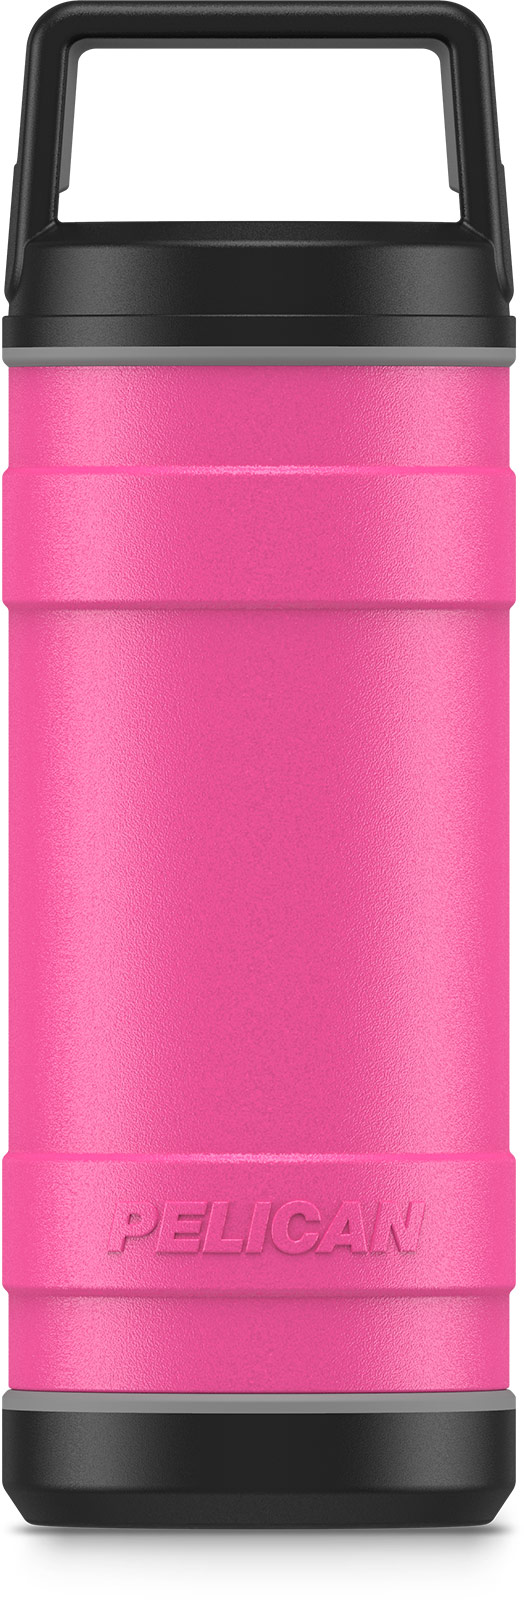 pelican pink 18oz stainless steel bottle